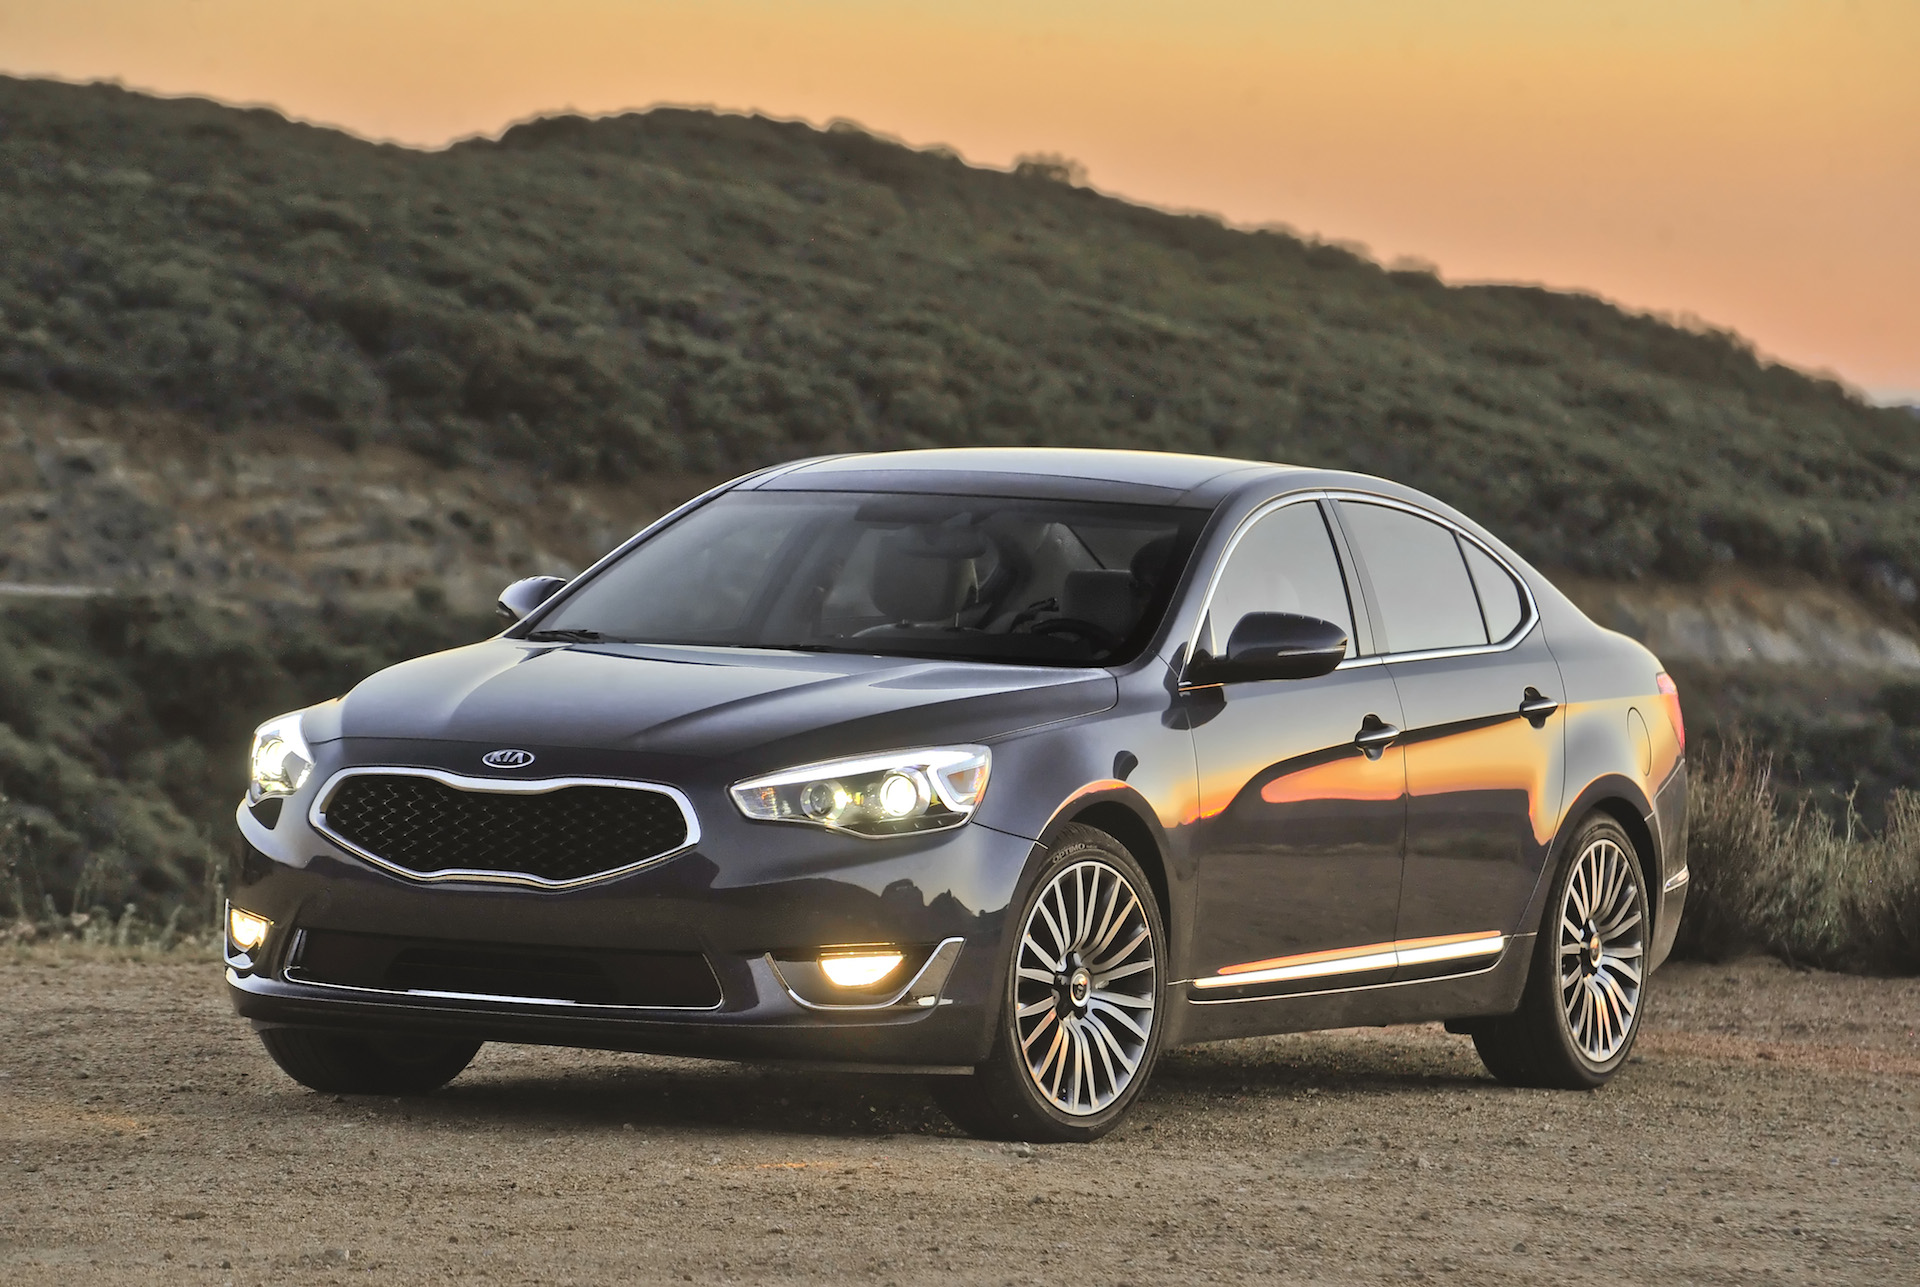 Subaru Kansas City >> New and Used Kia Cadenza: Prices, Photos, Reviews, Specs - The Car Connection